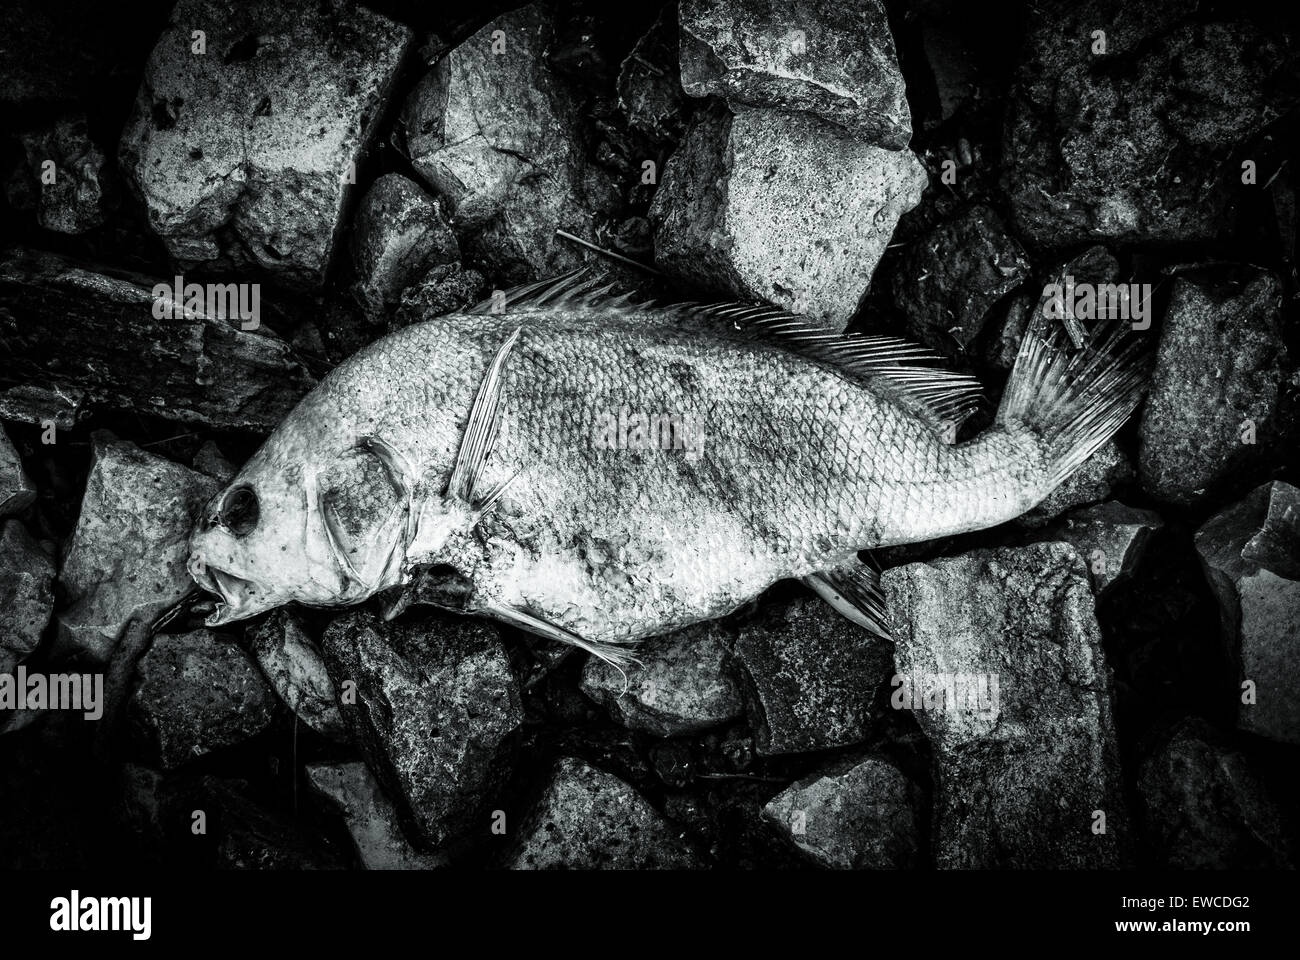 Black and White corpse of a fish lies on the bank of the river. - Stock Image